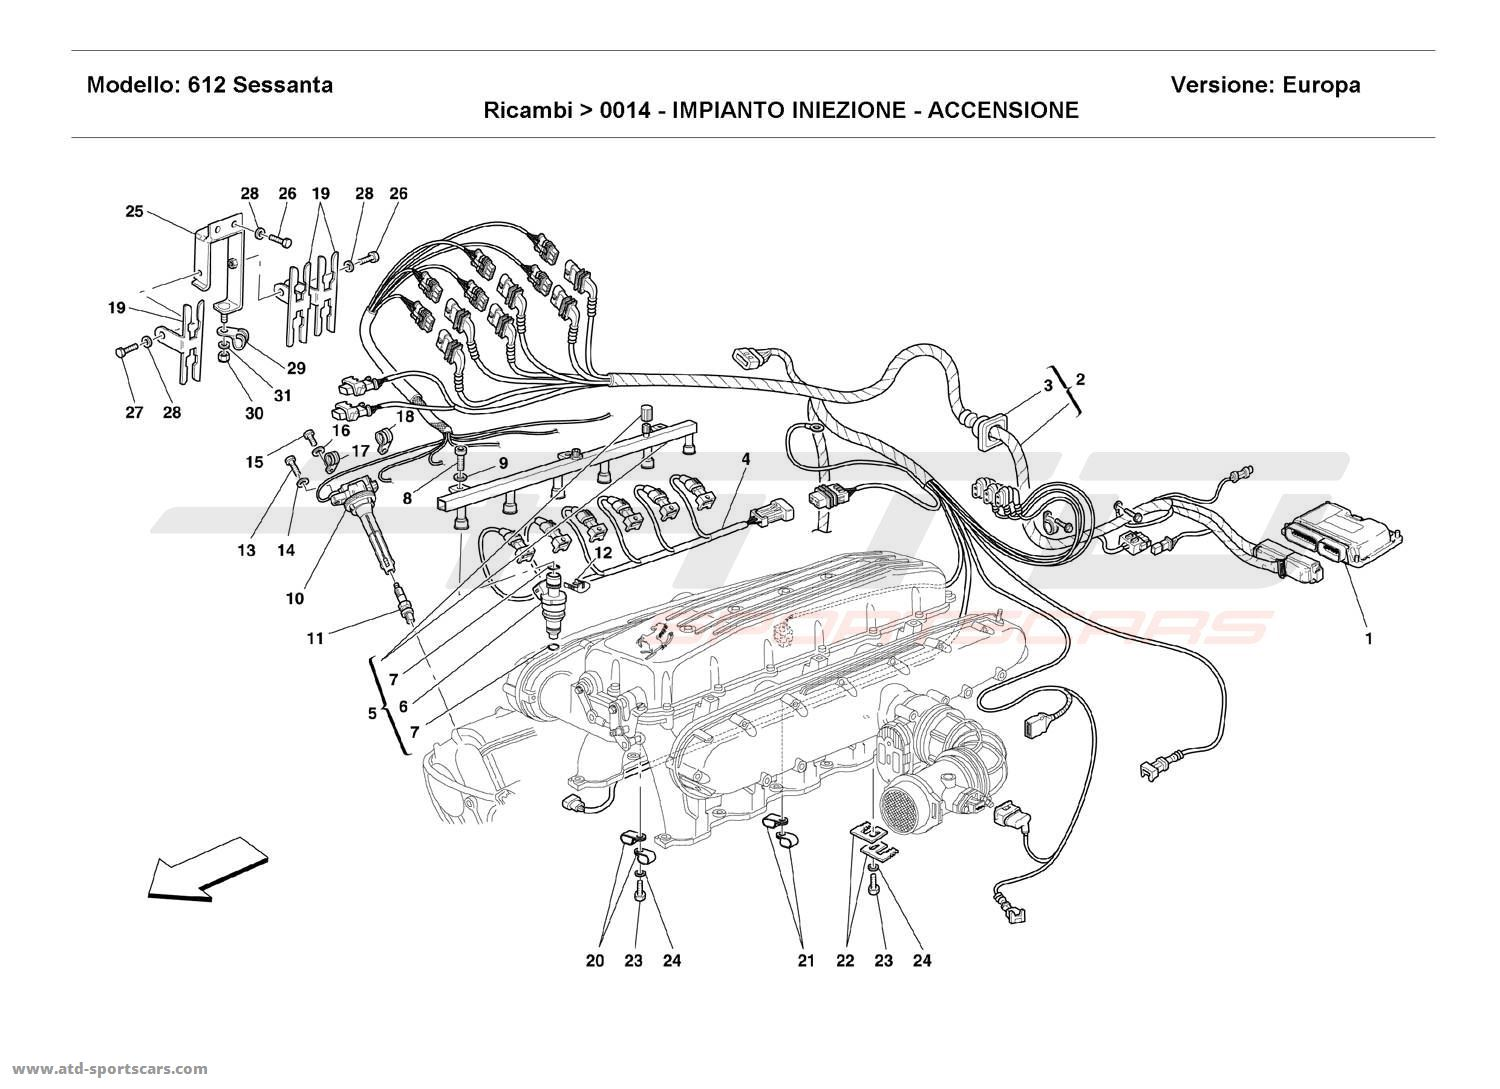 Ferrari 612 Sessanta Engine Parts At Atd Sportscars